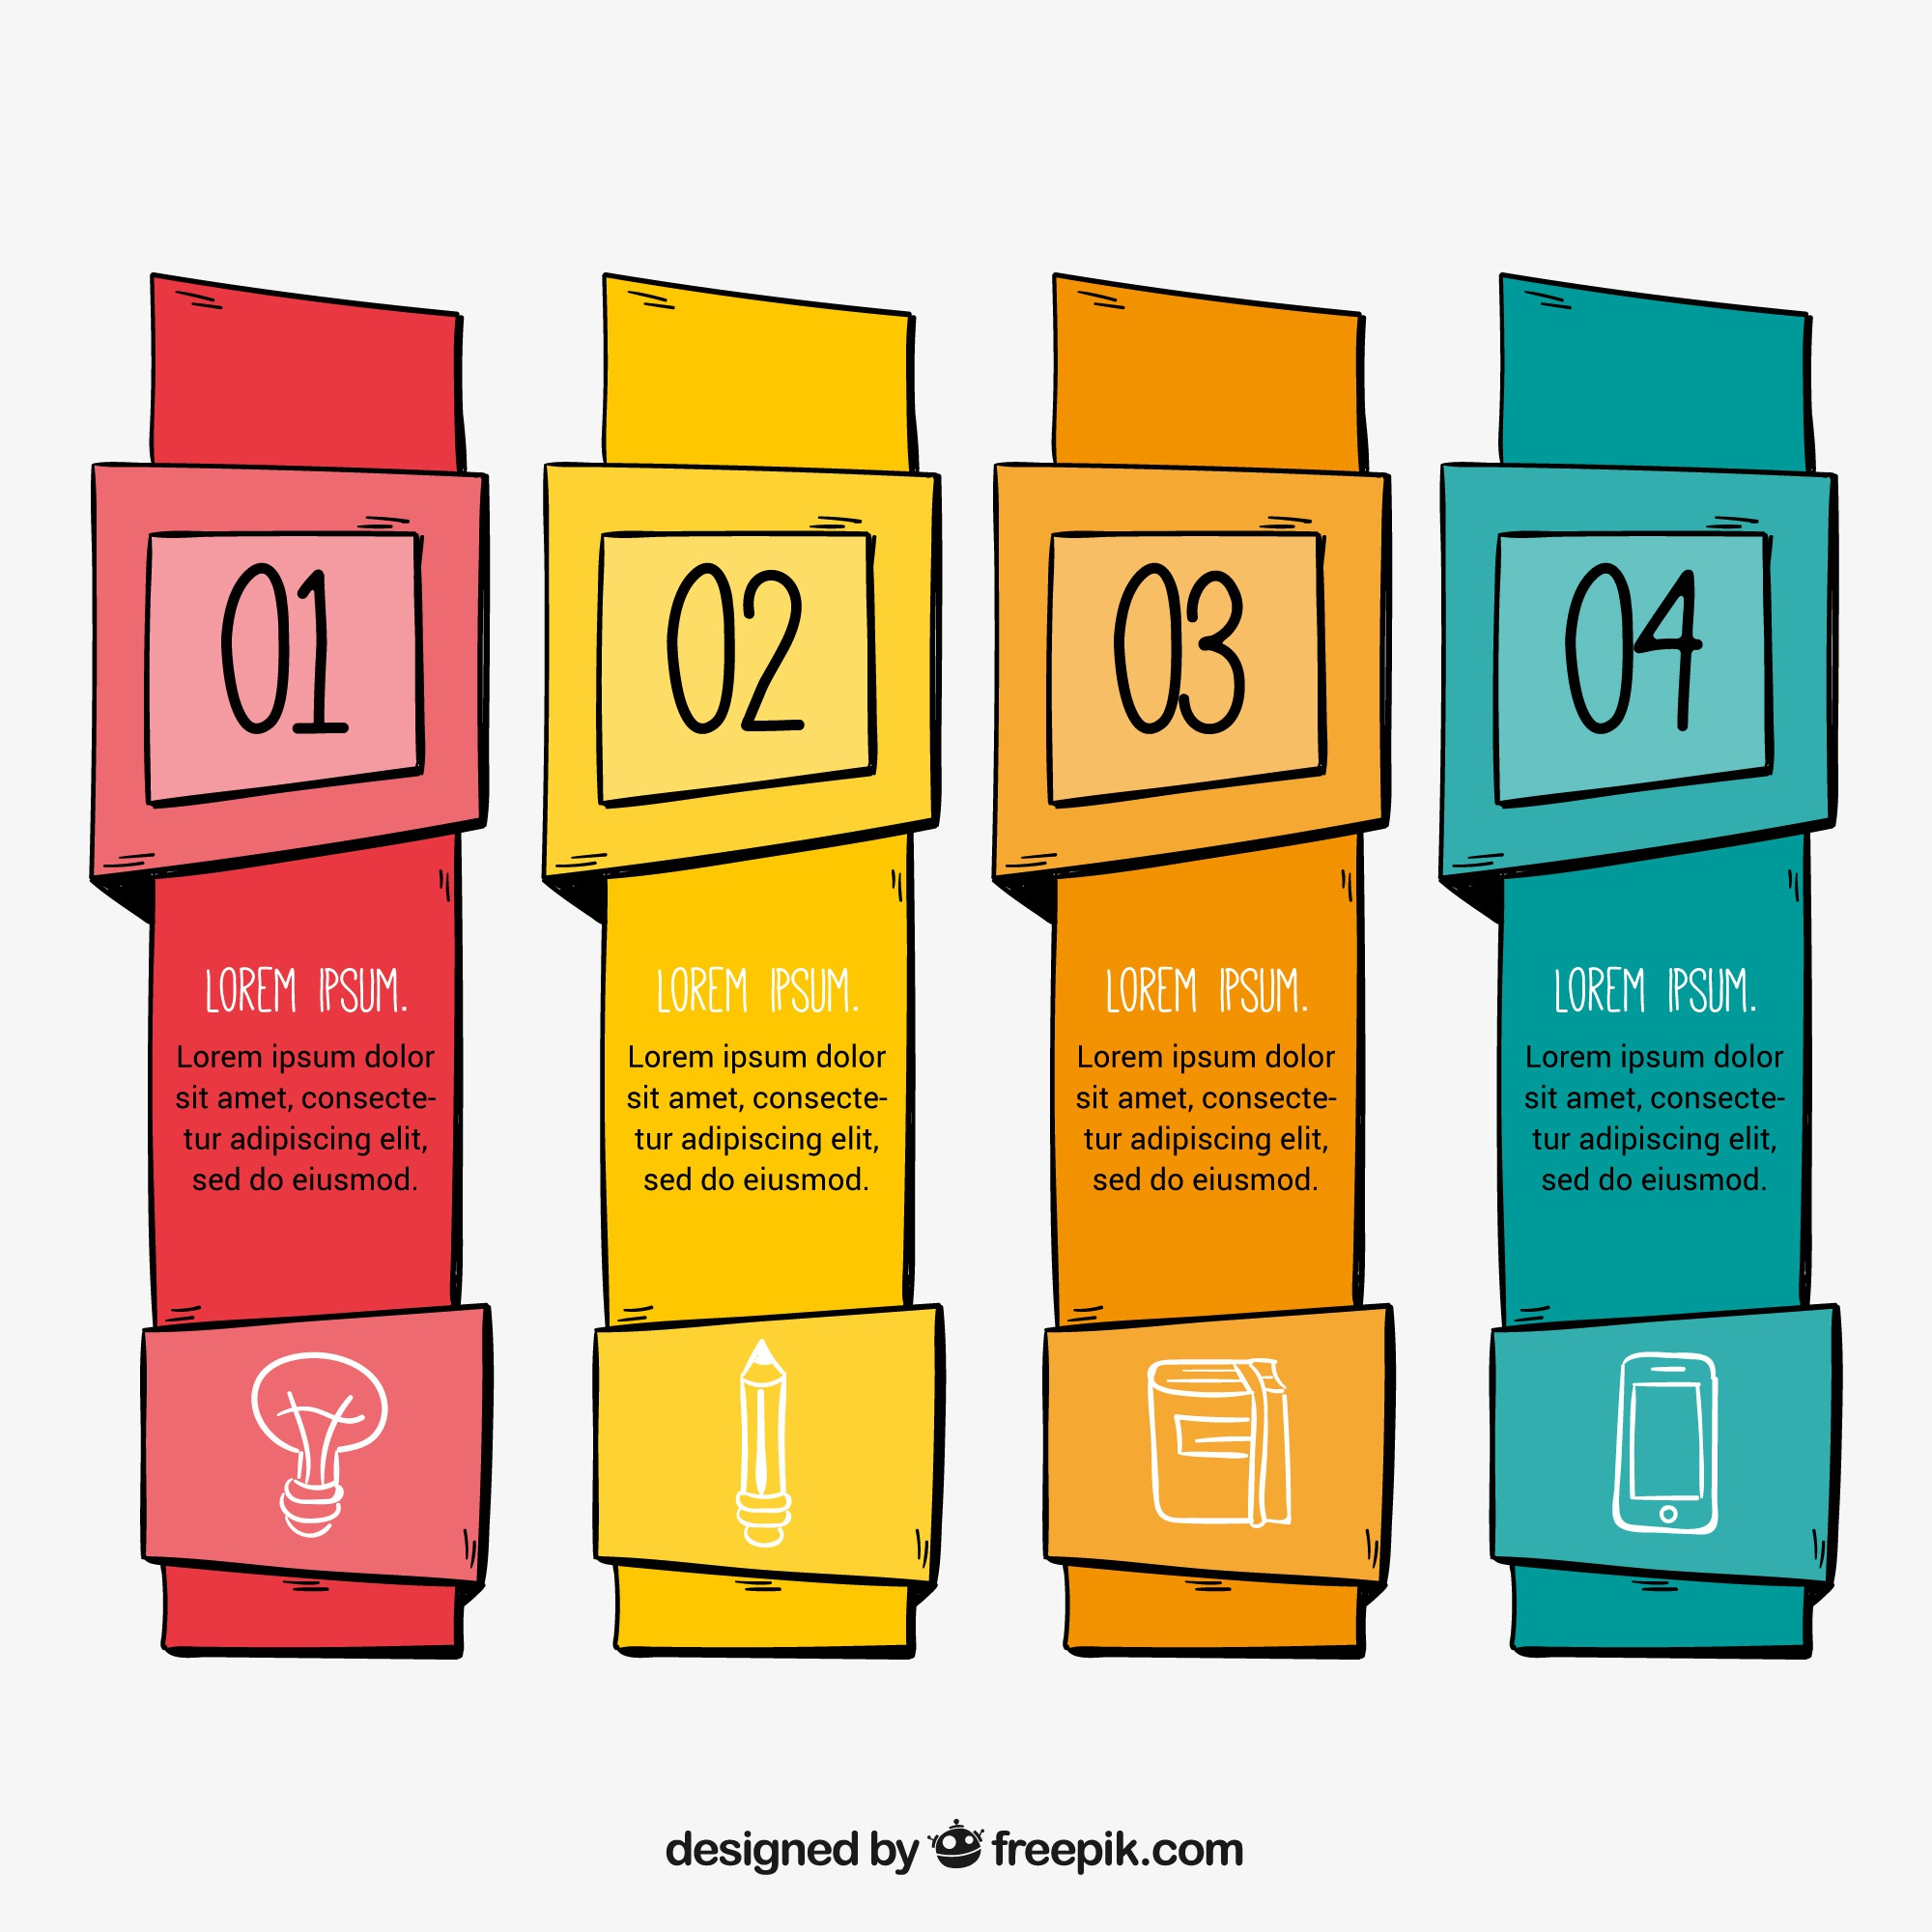 Pack of four hand-drawn infographic banners with different colors